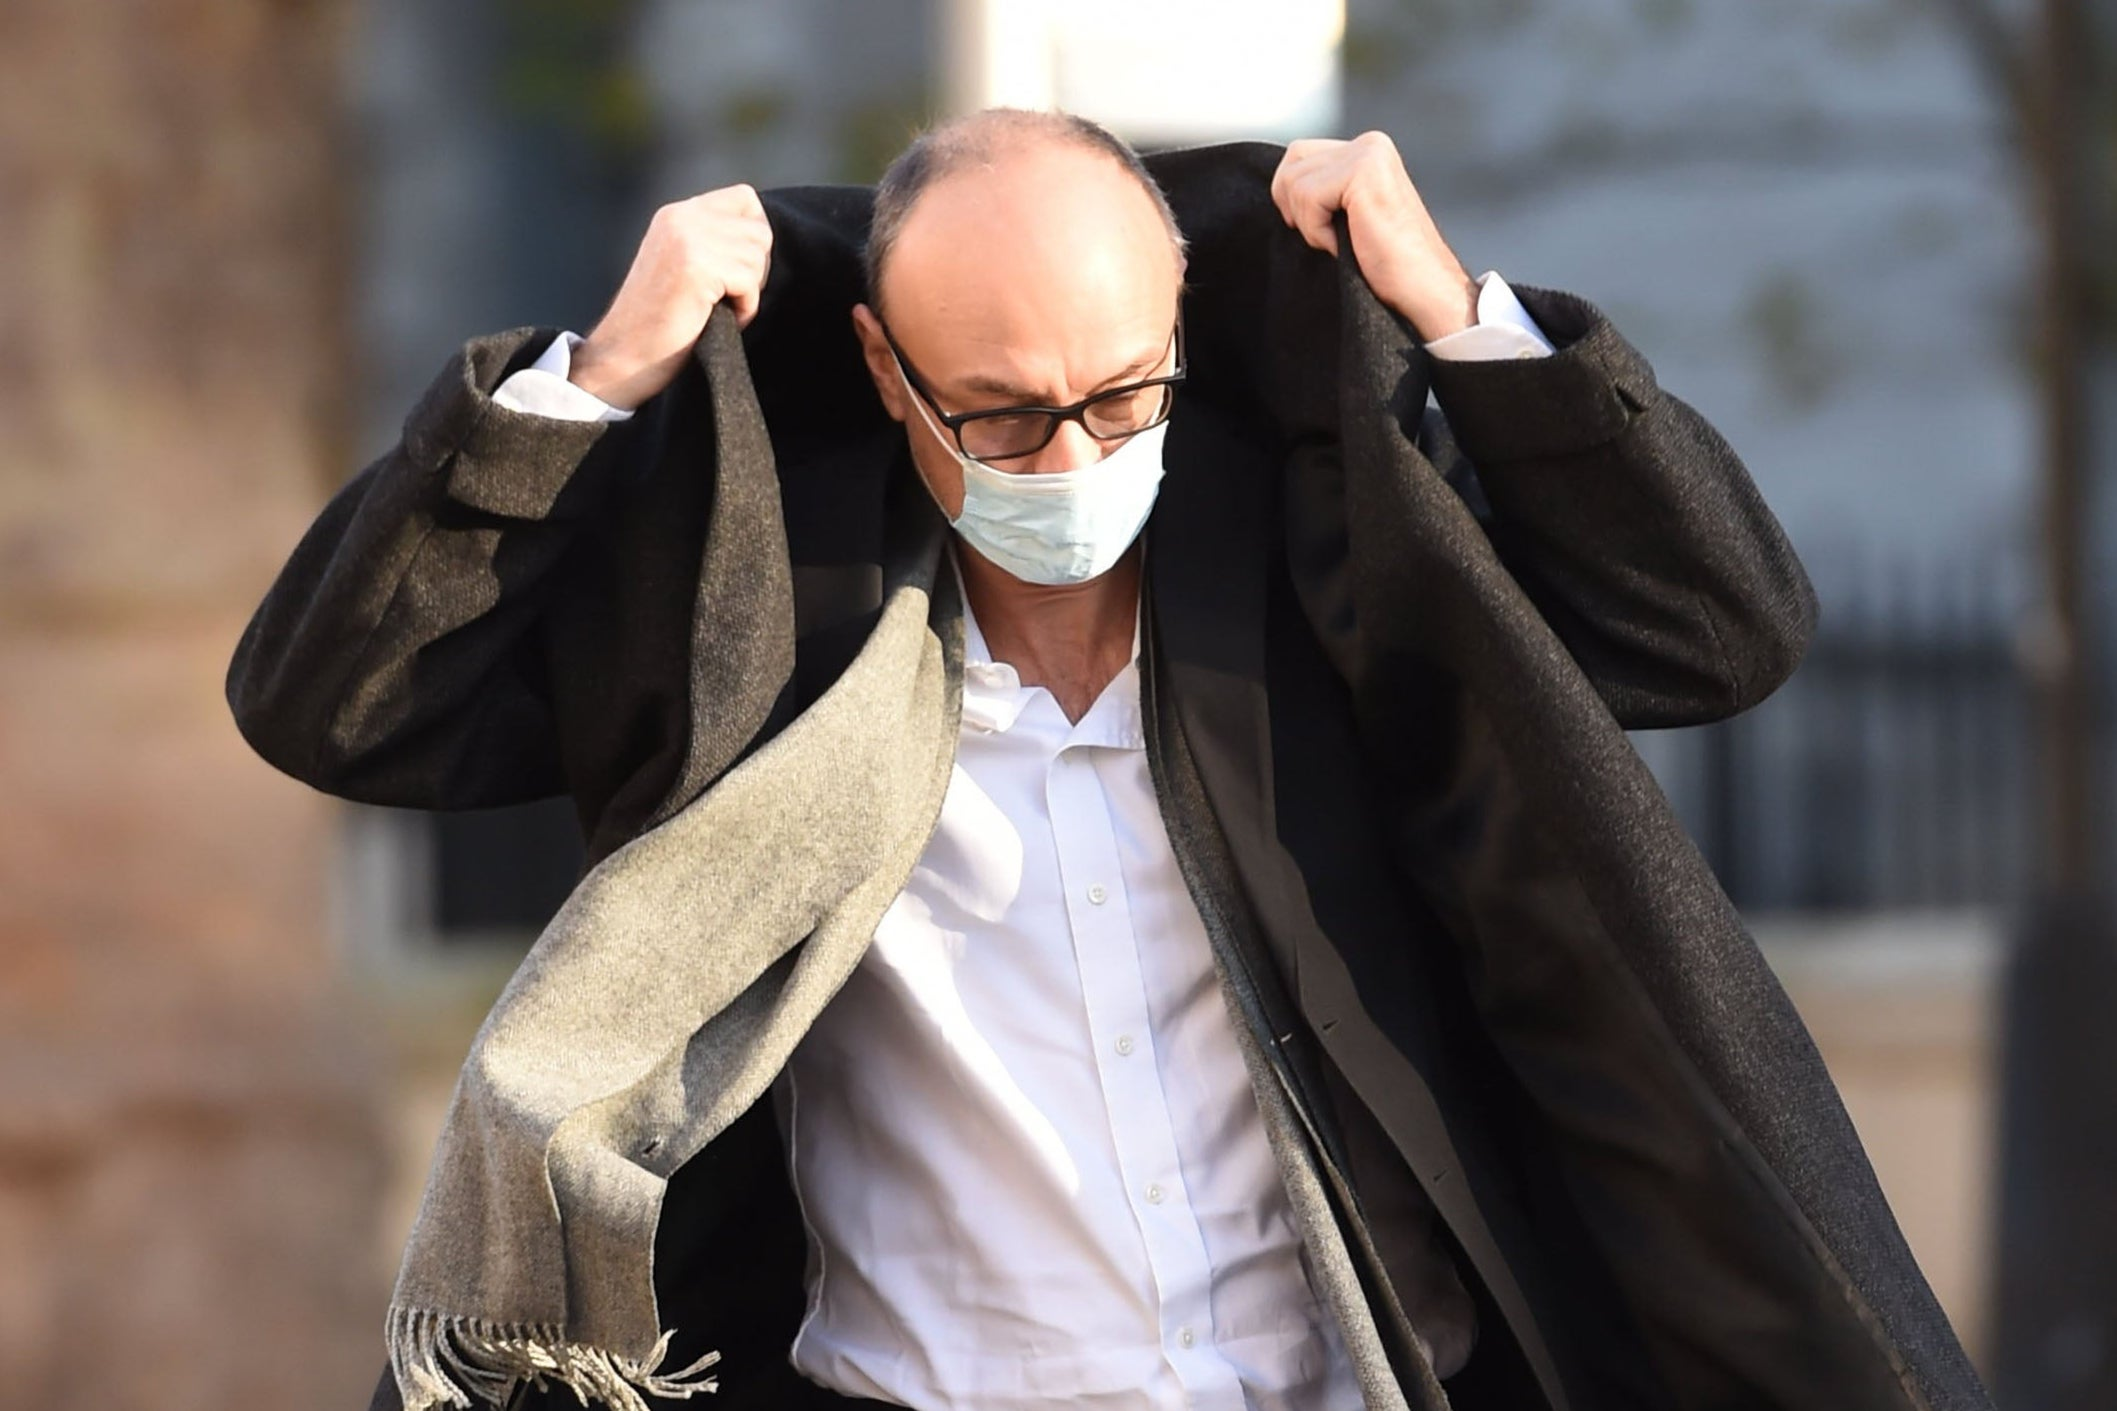 <p>Dominic Cummings arrives for work on Friday</p>